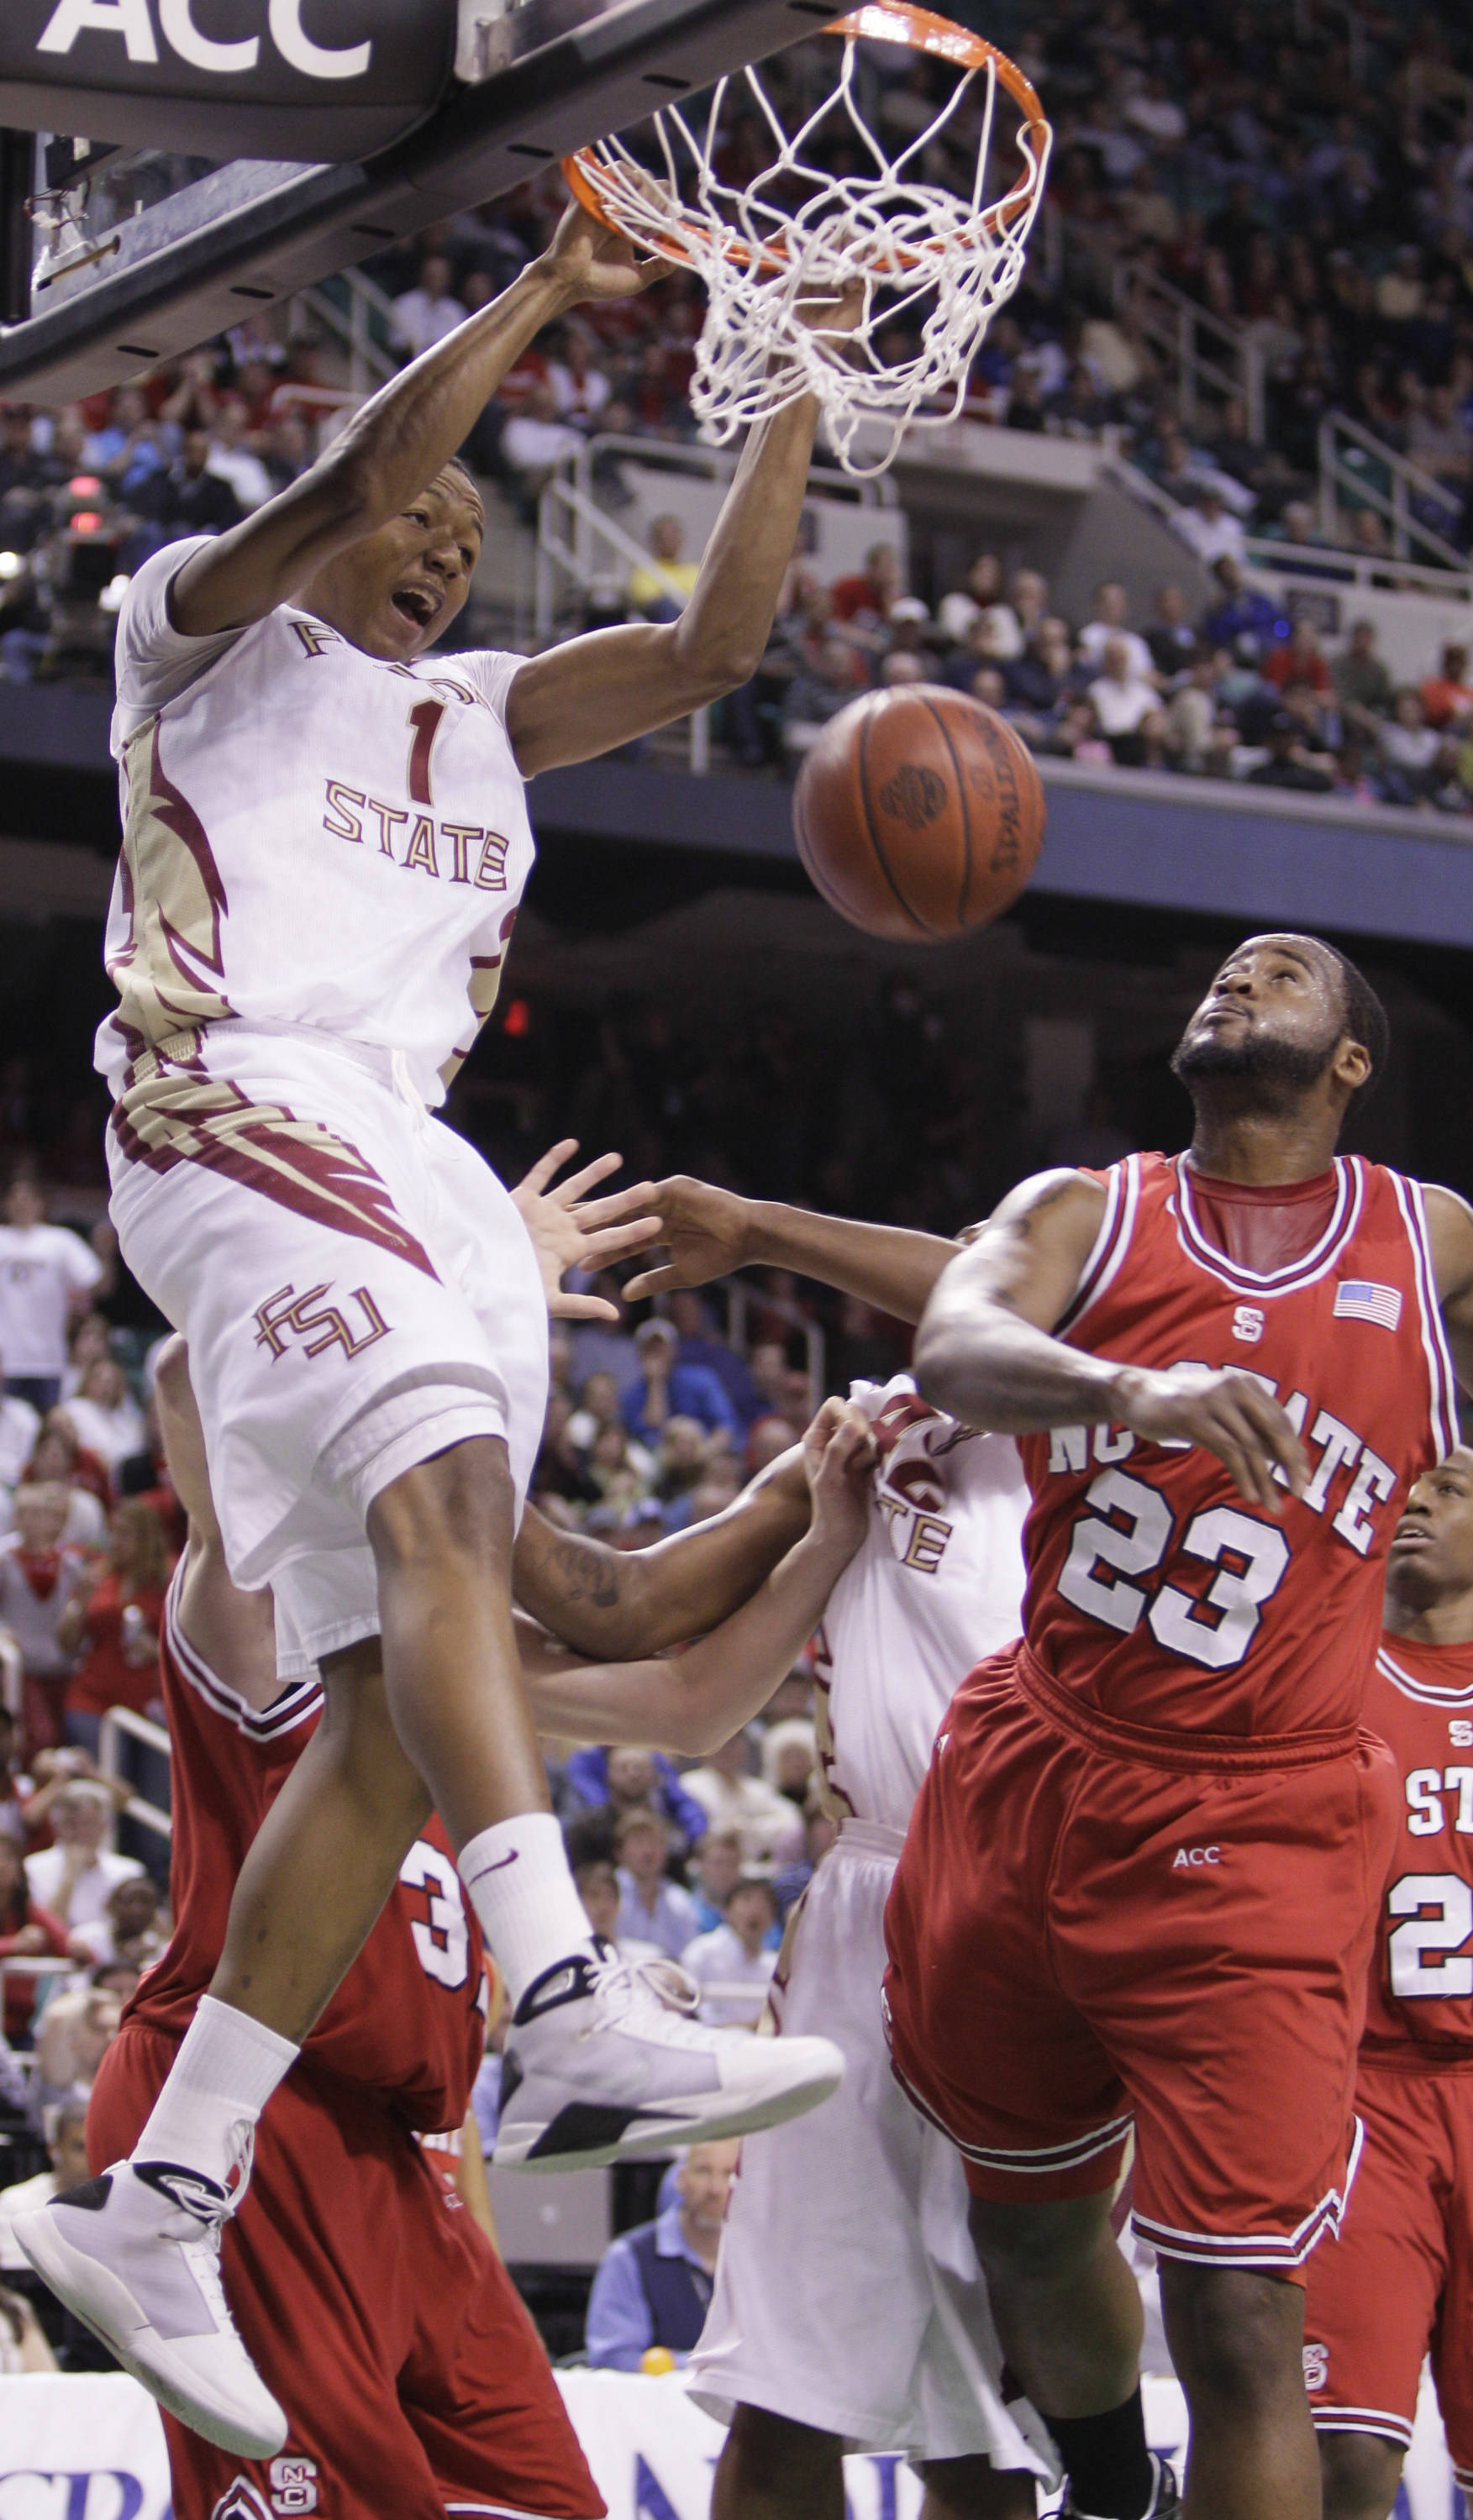 Florida State's Xavier Gibson (1) dunks the ball as North Carolina State's Tracy Smith (23) looks on during the first half of an NCAA college basketball game in the Atlantic Coast Conference tournament in Greensboro, N.C., Friday, March 12, 2010. (AP Photo/Gerry Broome)